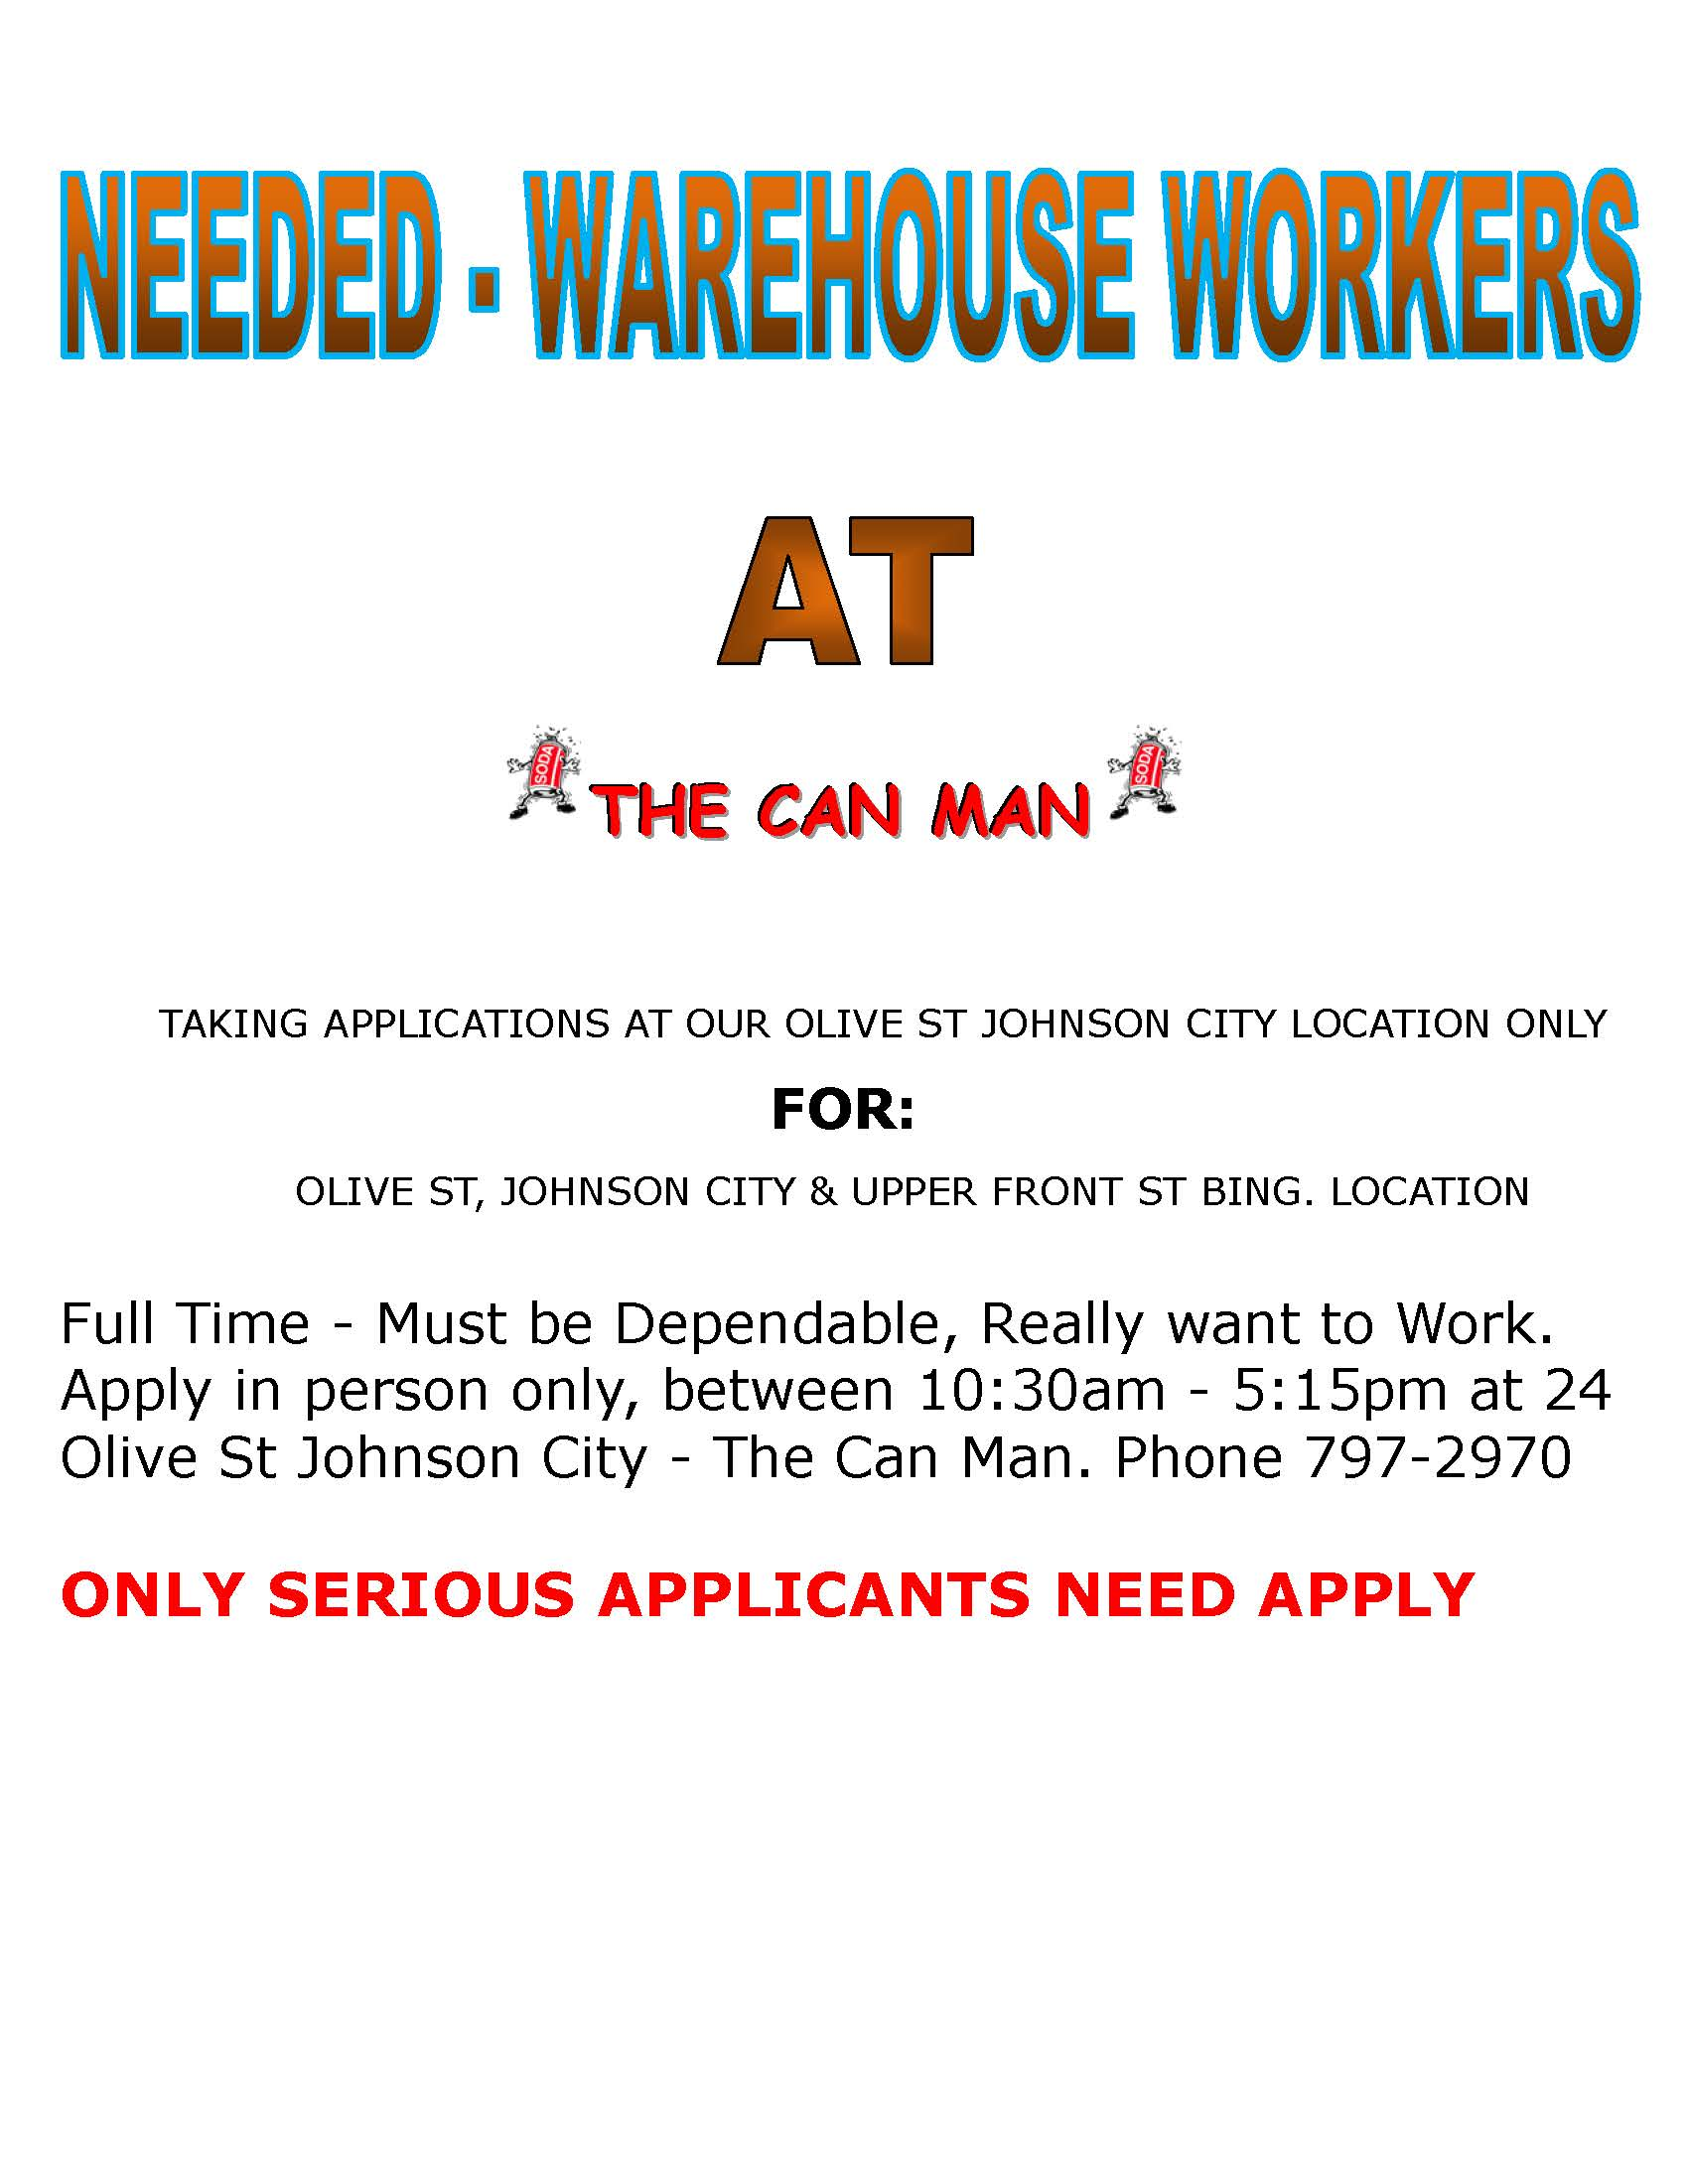 HELP WANTED Warehouse